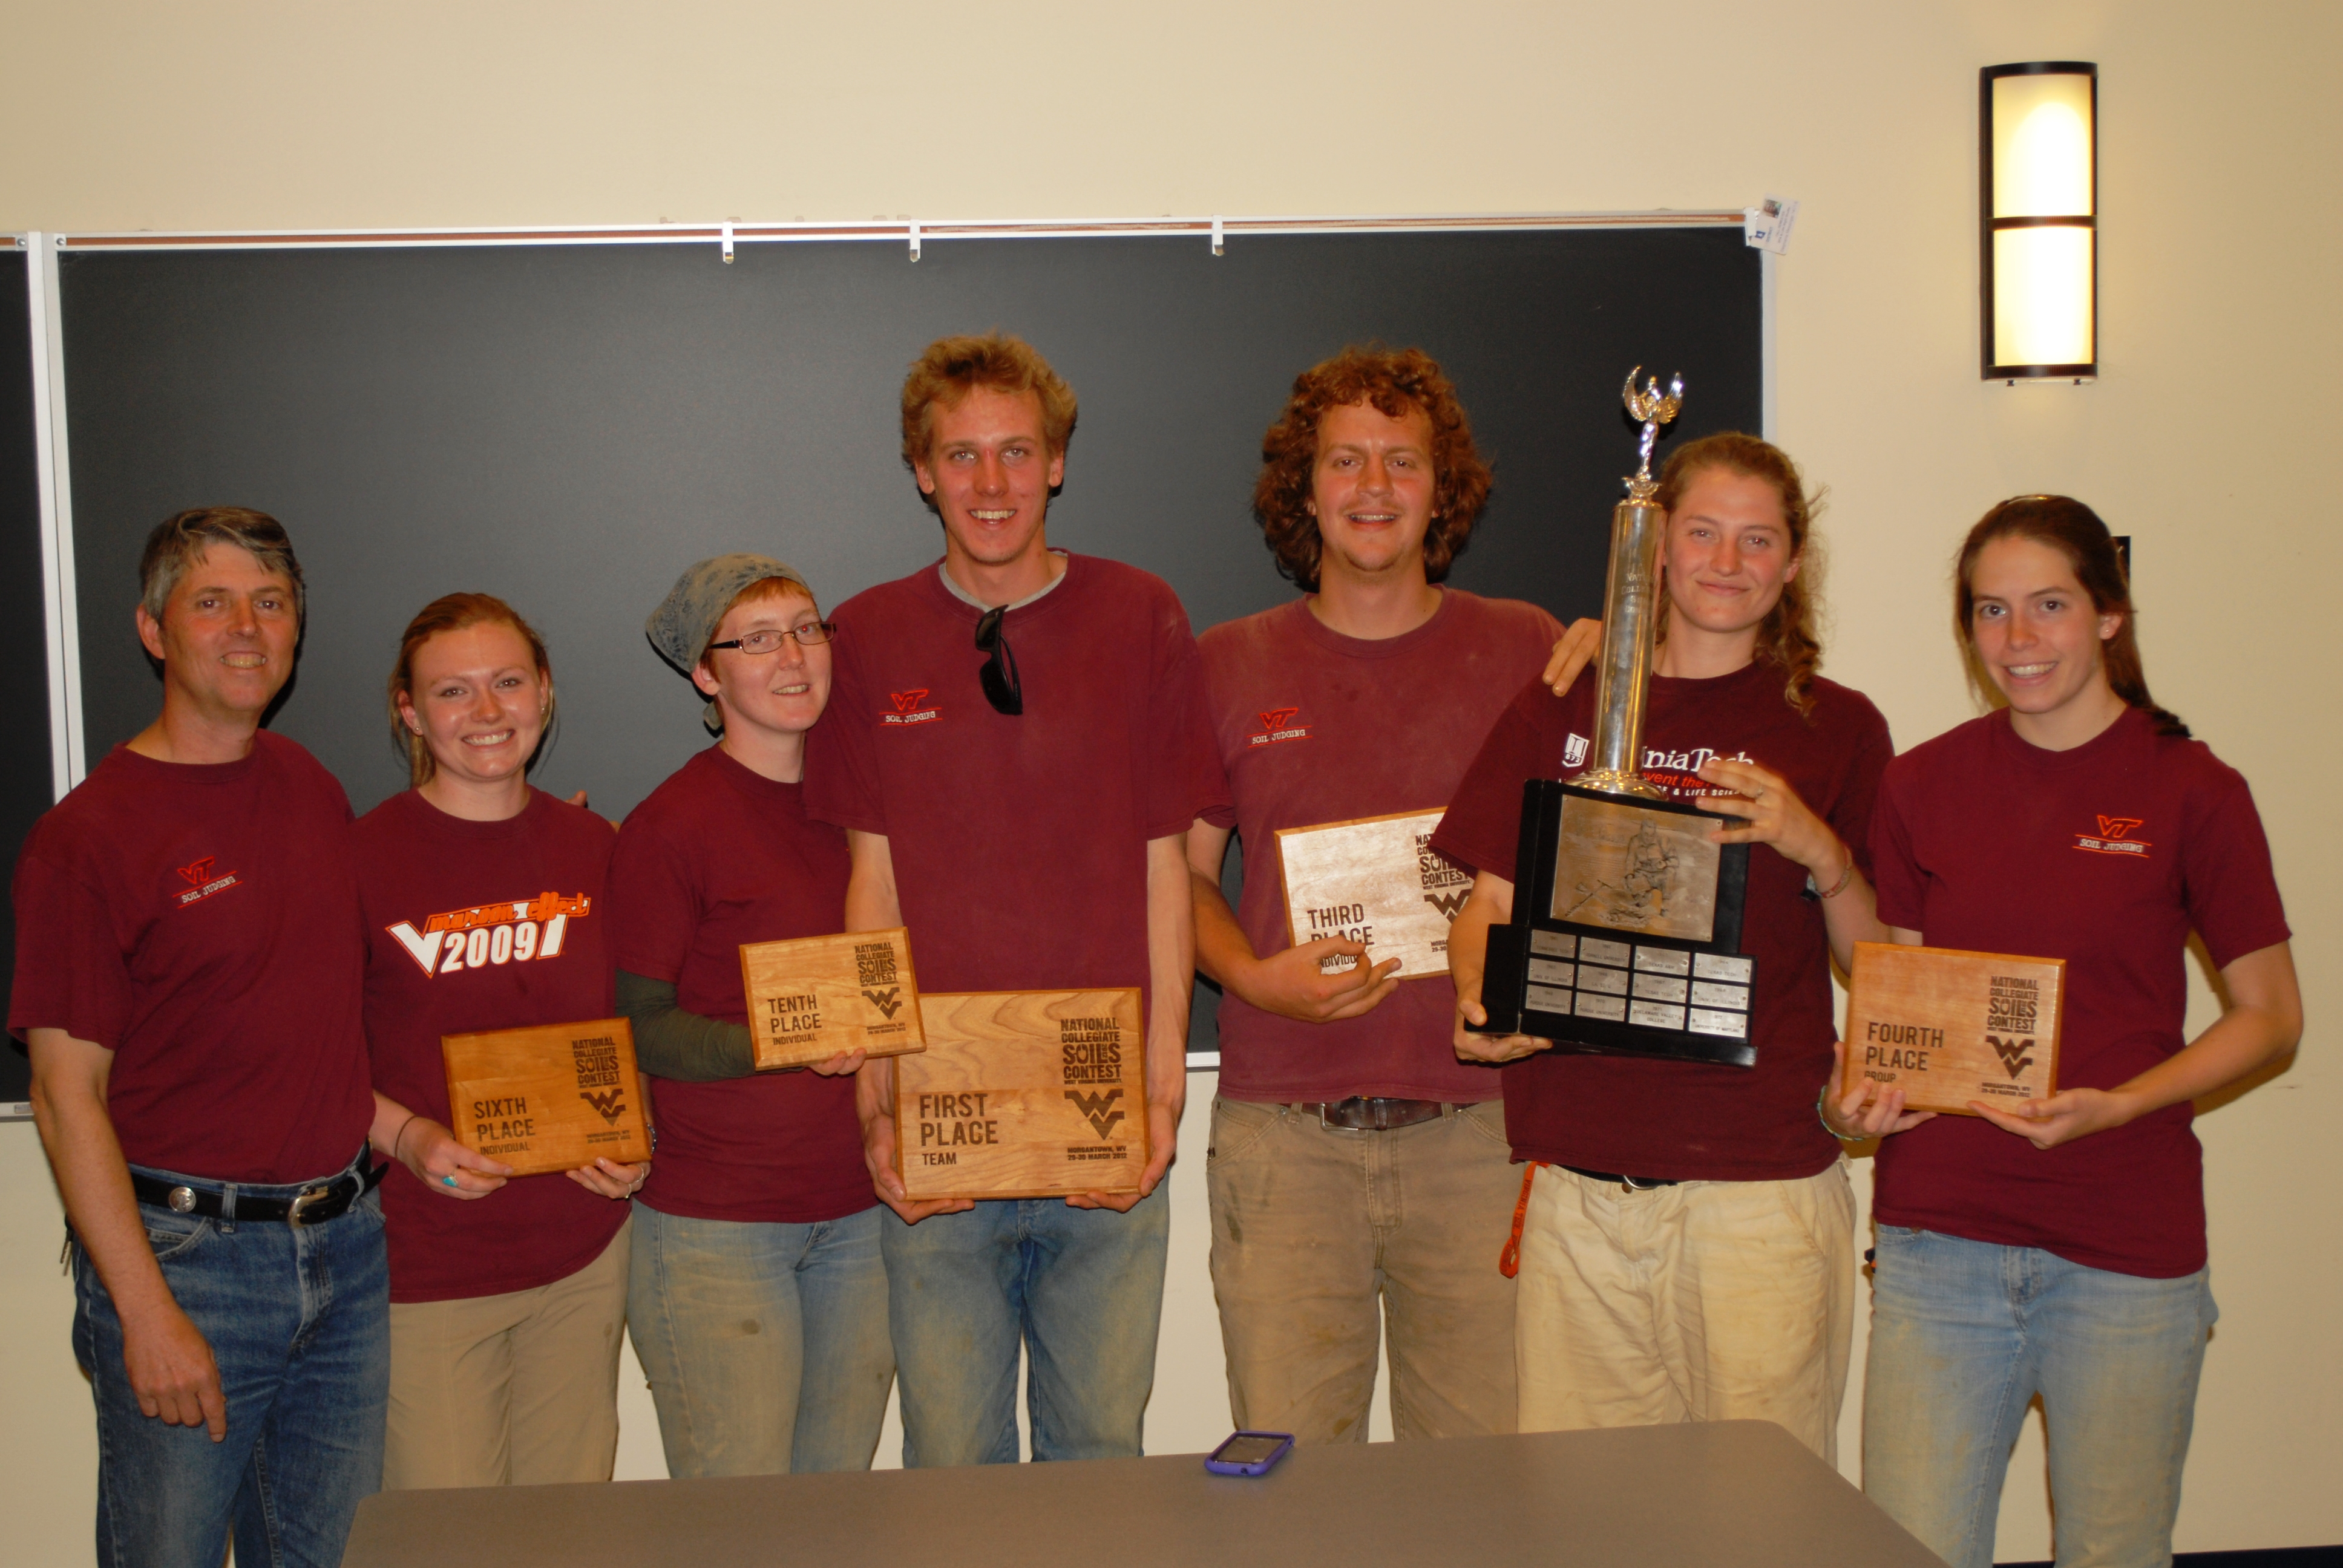 Students from the Department of Crop and Soil Environmental Sciences won the National Collegiate Soil Judging Championship